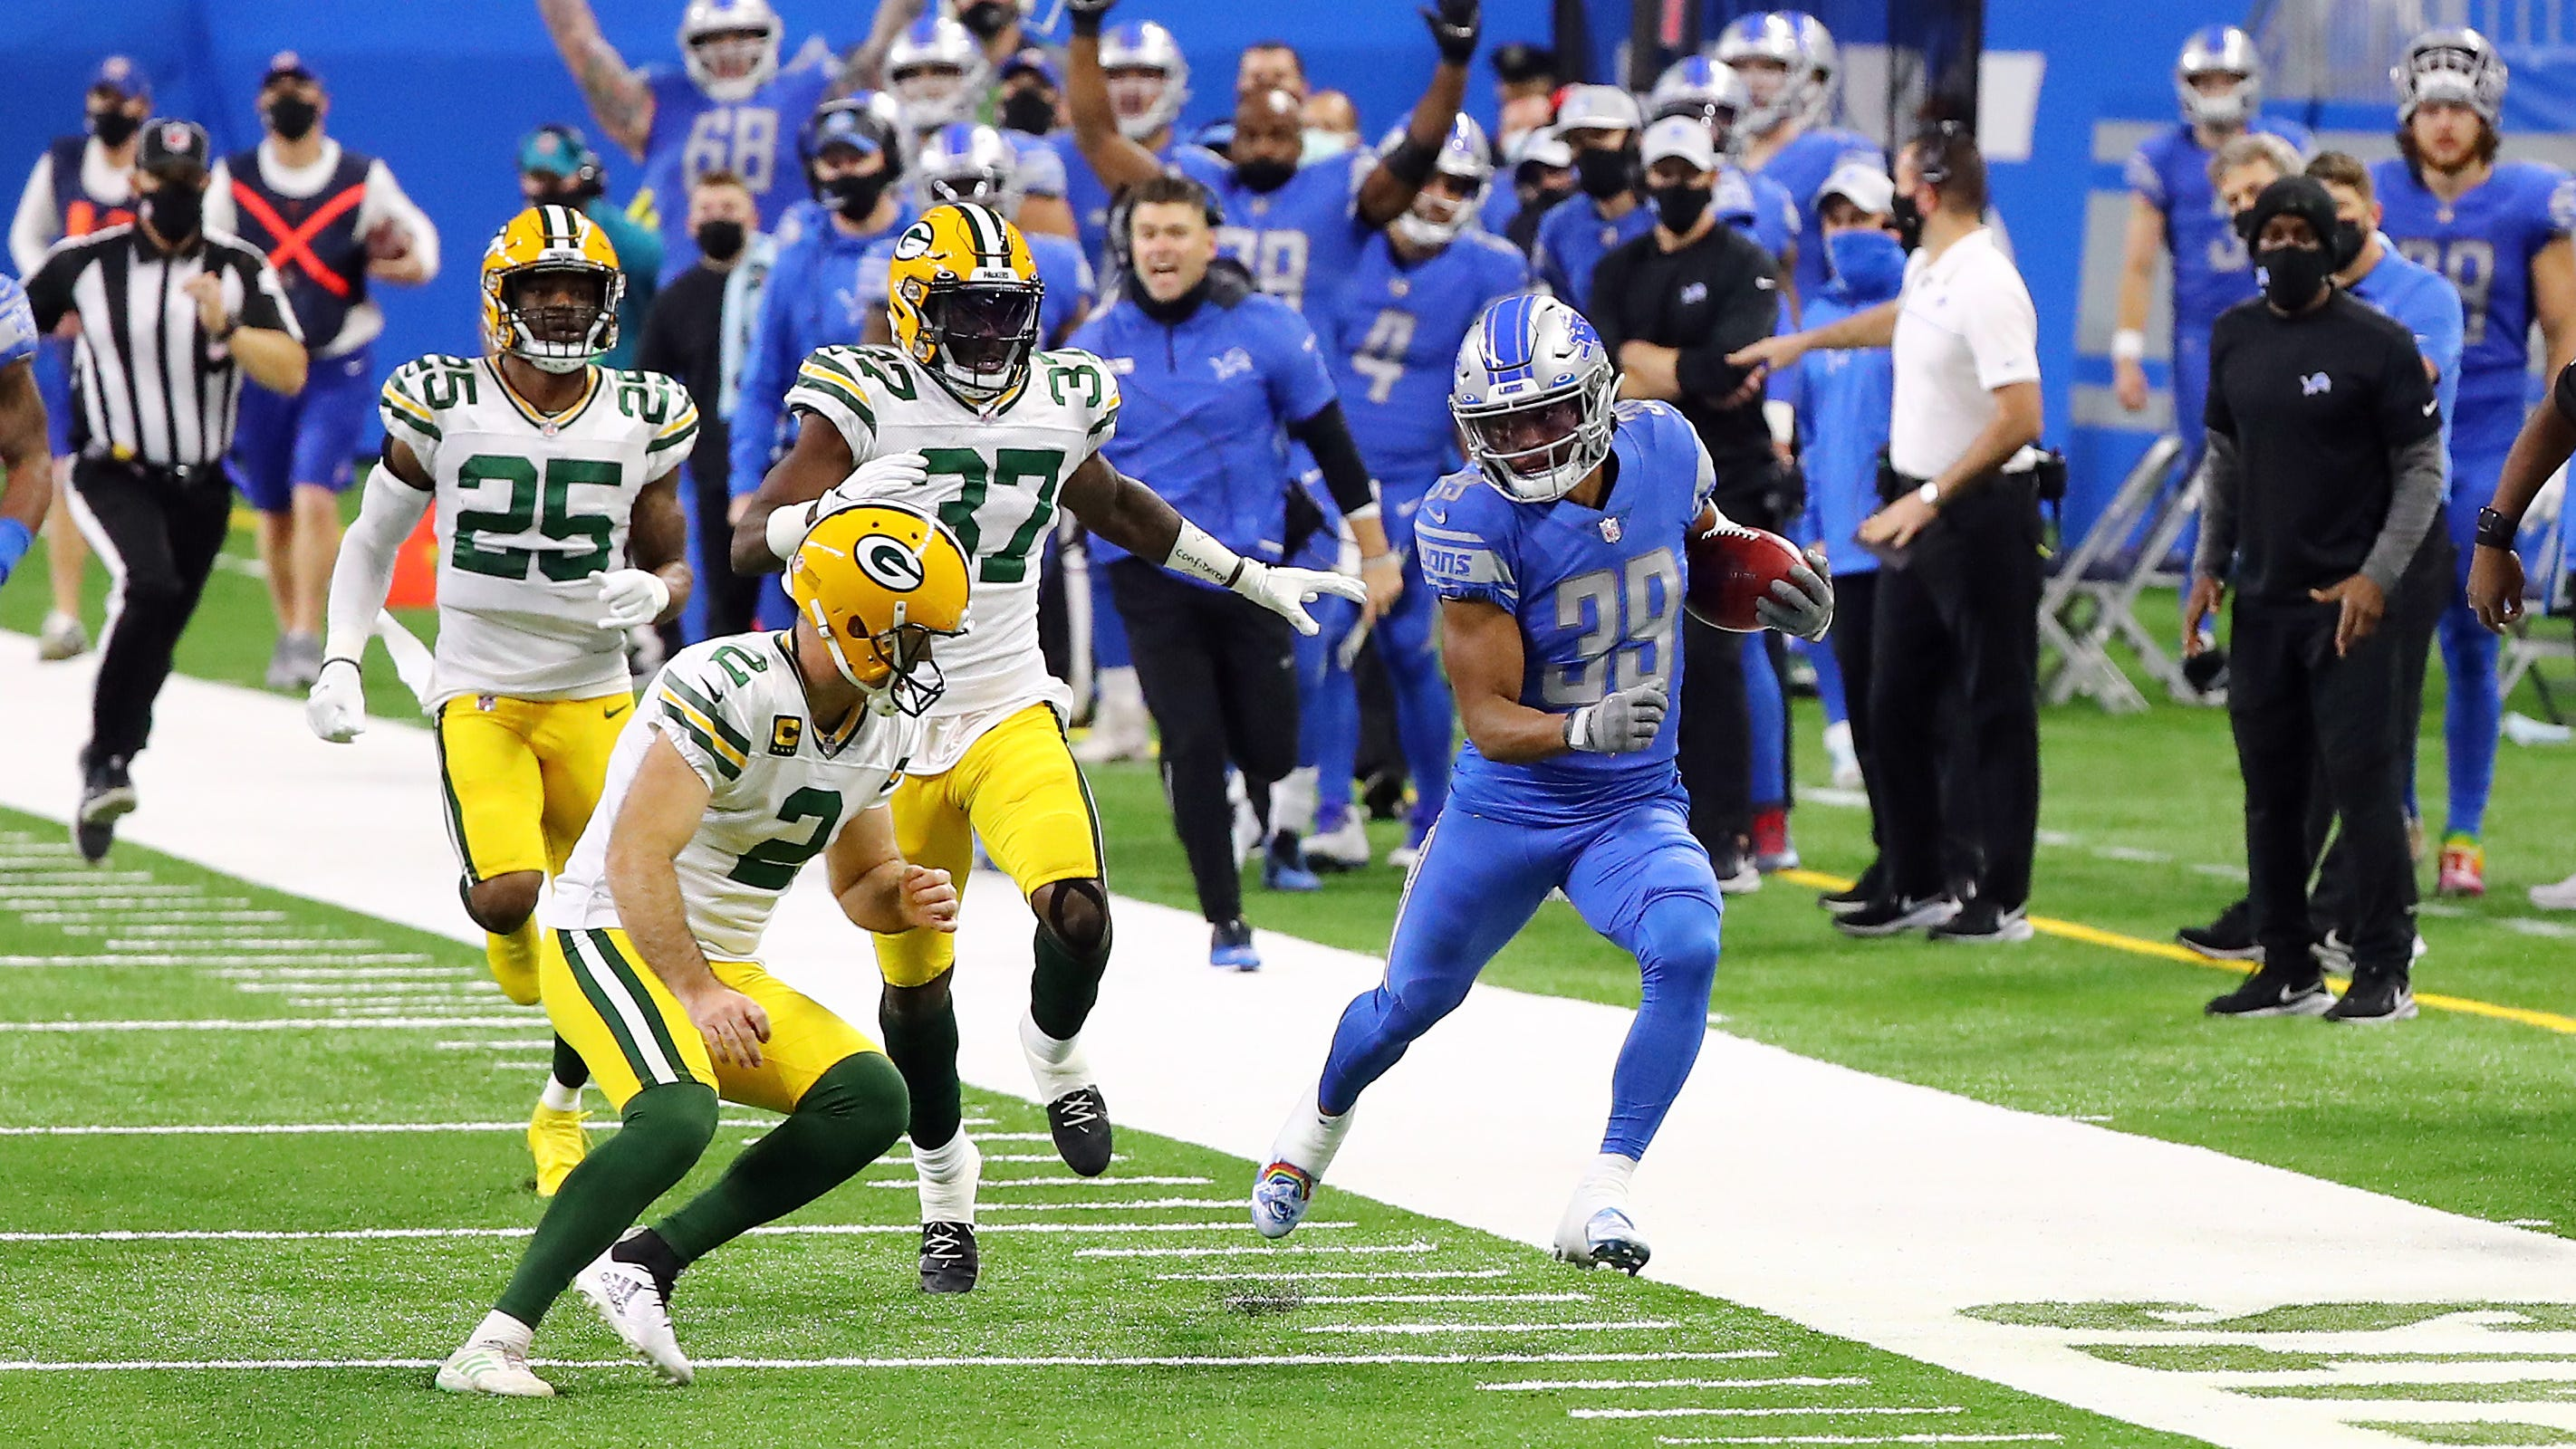 Jamal Agnew (39) of the Detroit Lions returns a kickoff before being tackled by kicker Mason Crosby (2) of the Green Bay Packers during the fourth quarter at Ford Field on Dec. 13, 2020, in Detroit, Michigan.